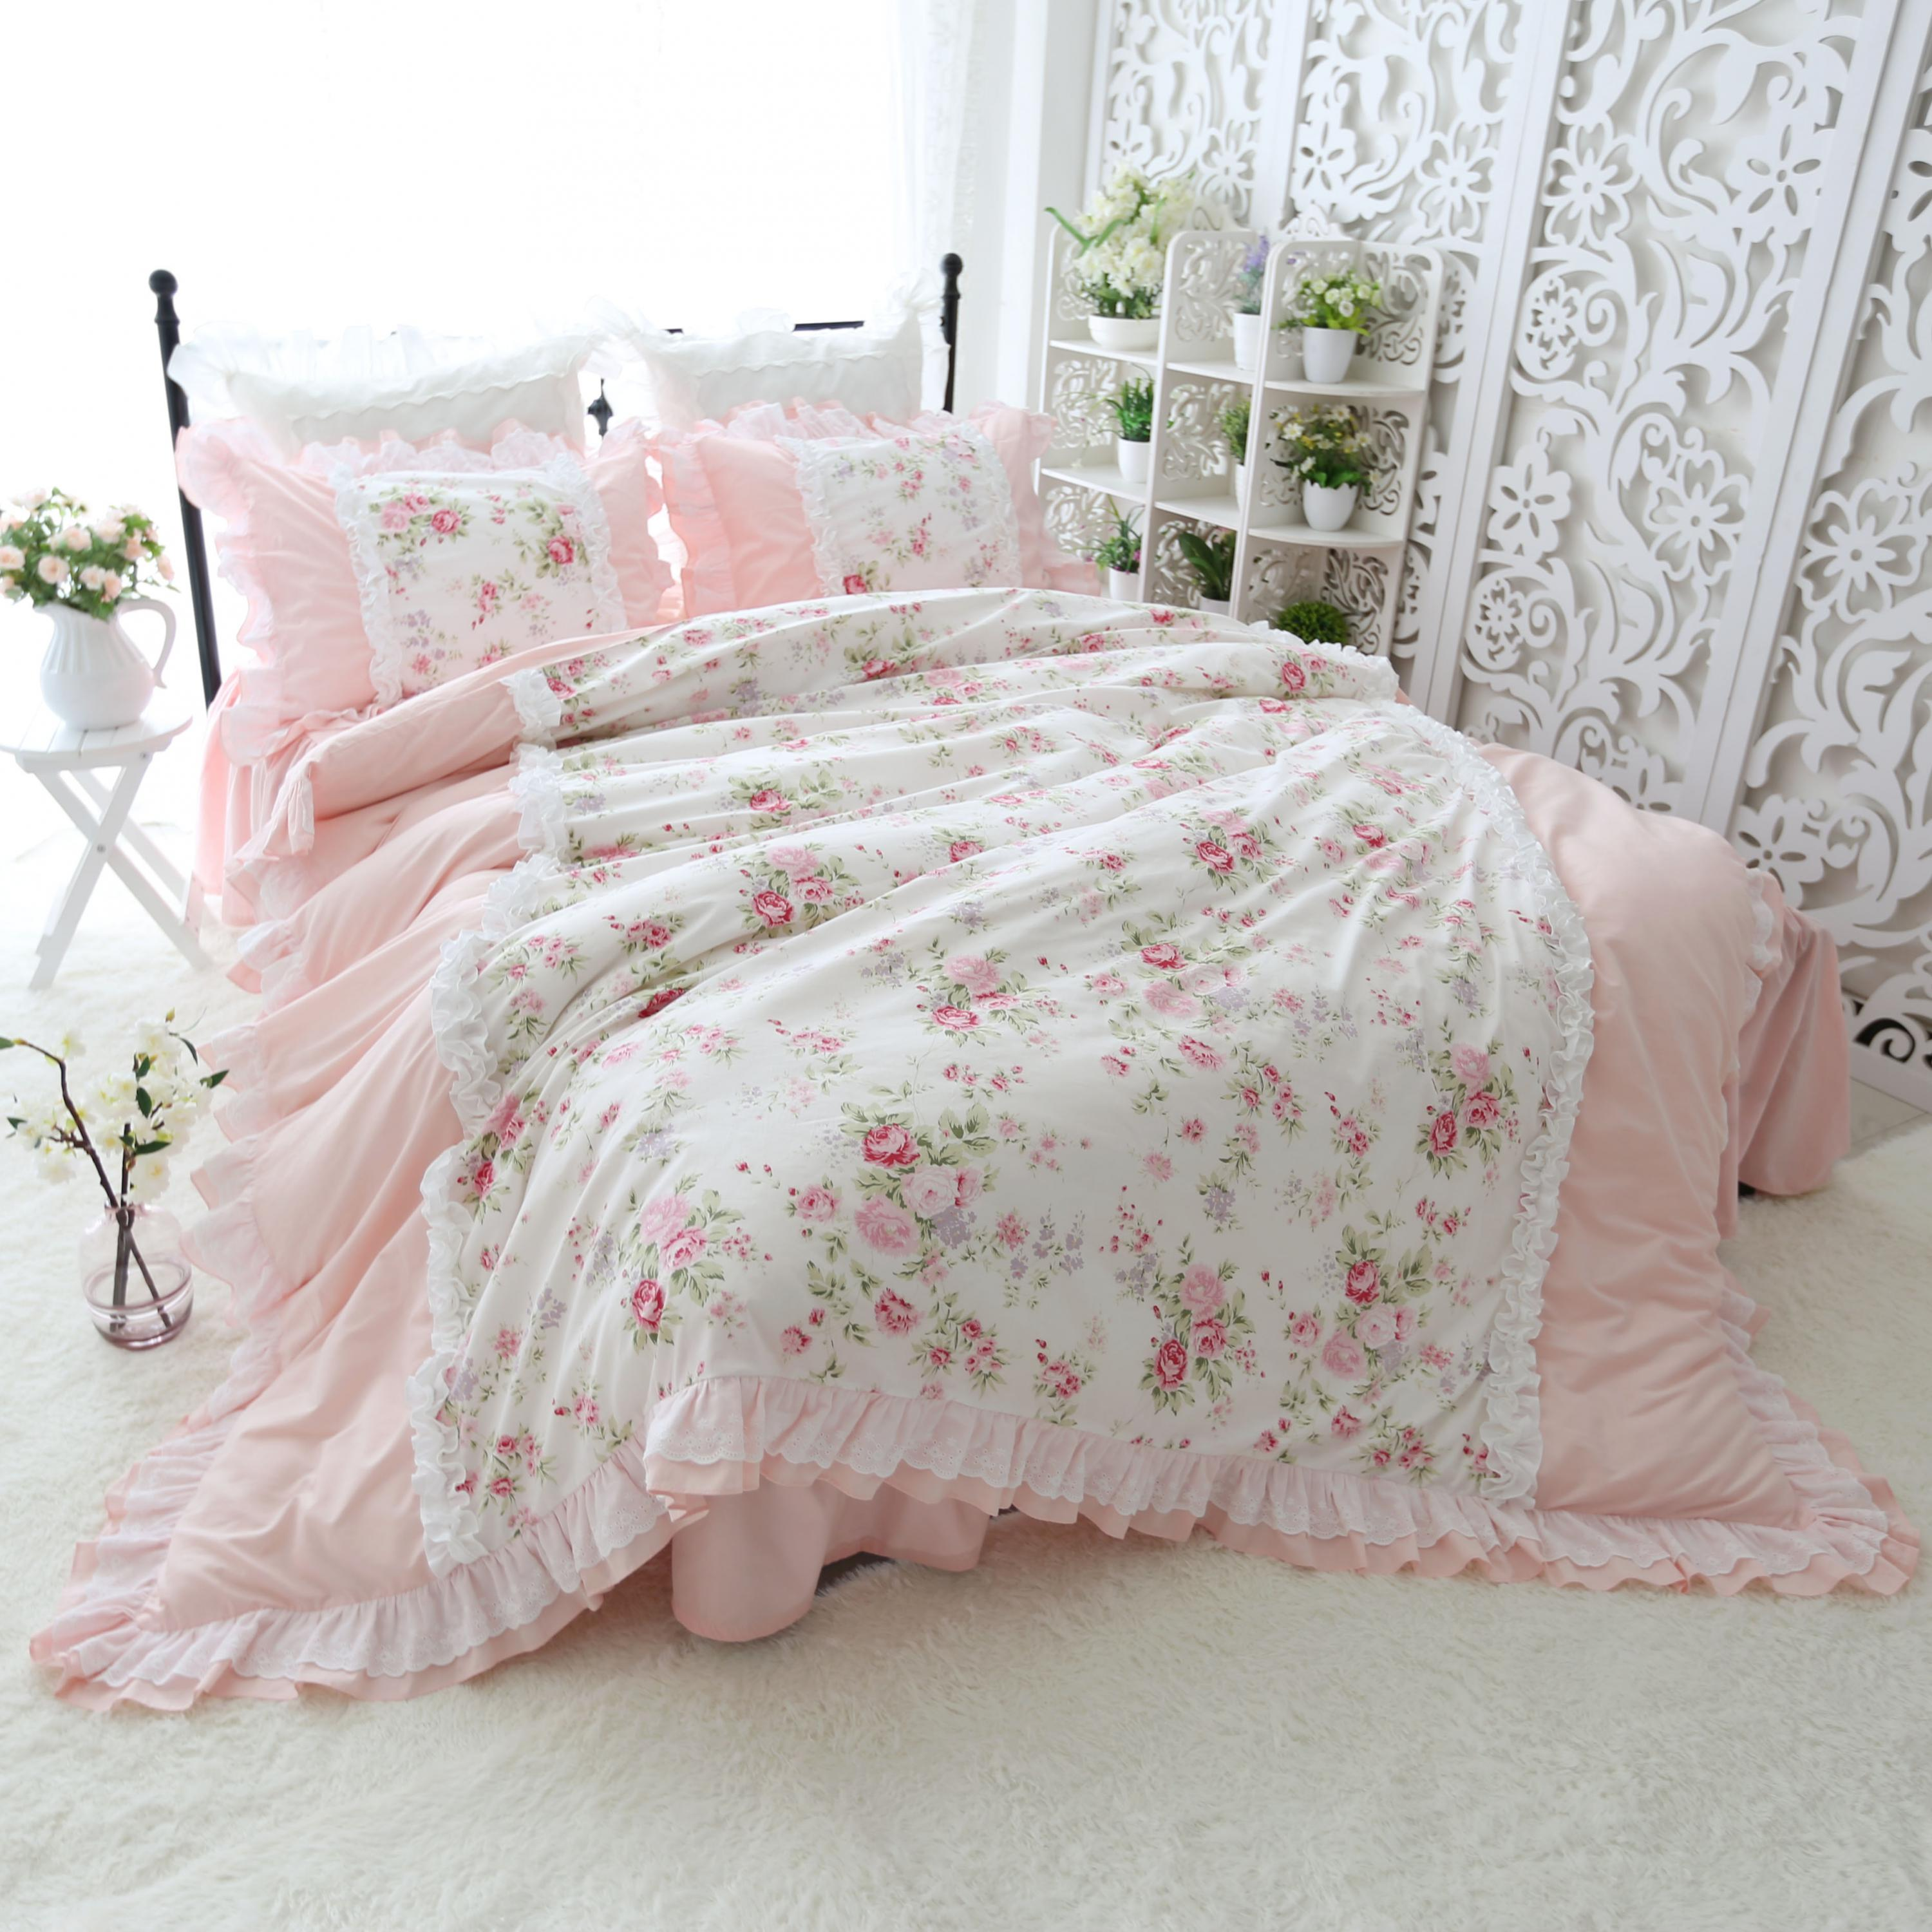 100%Cotton Blossom Pink Flower Ruffled Patchwork Duvet Cover Bedskirt Princess Style Queen King Twin Size Girls Bedding Sets